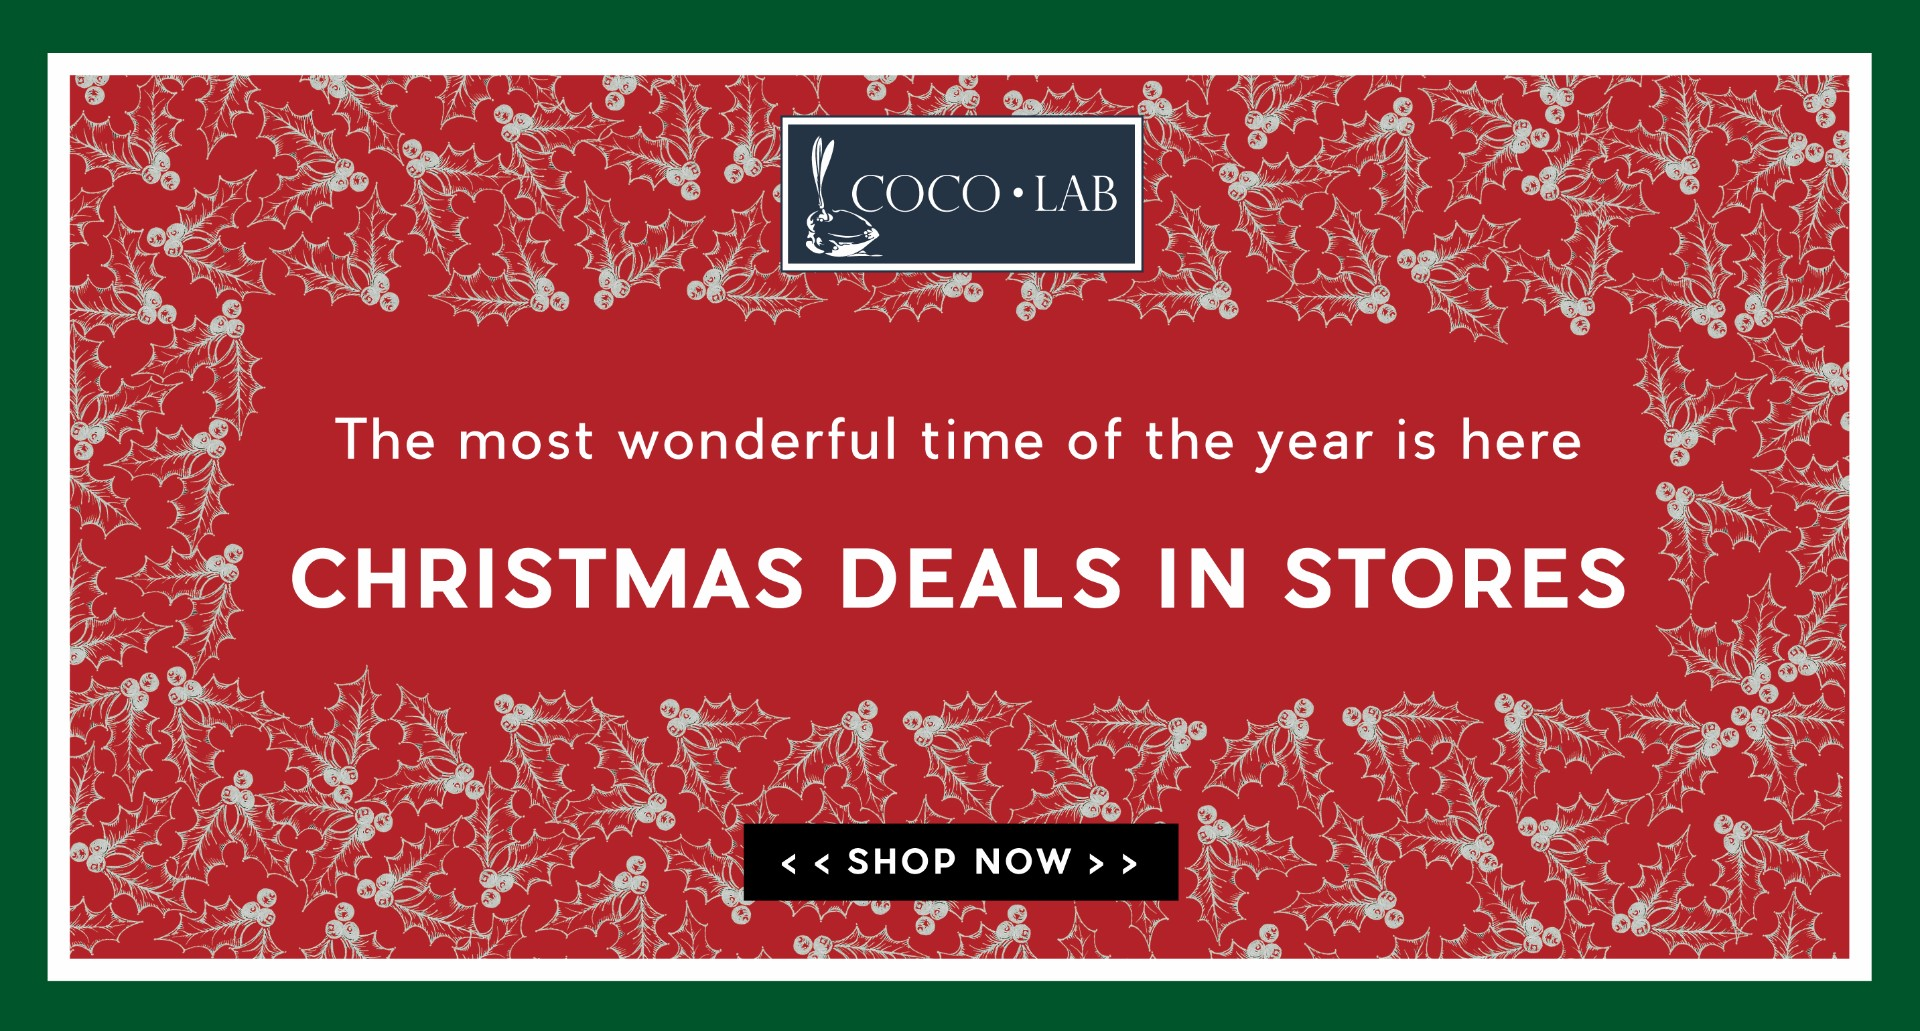 Presents galore and deals in store!